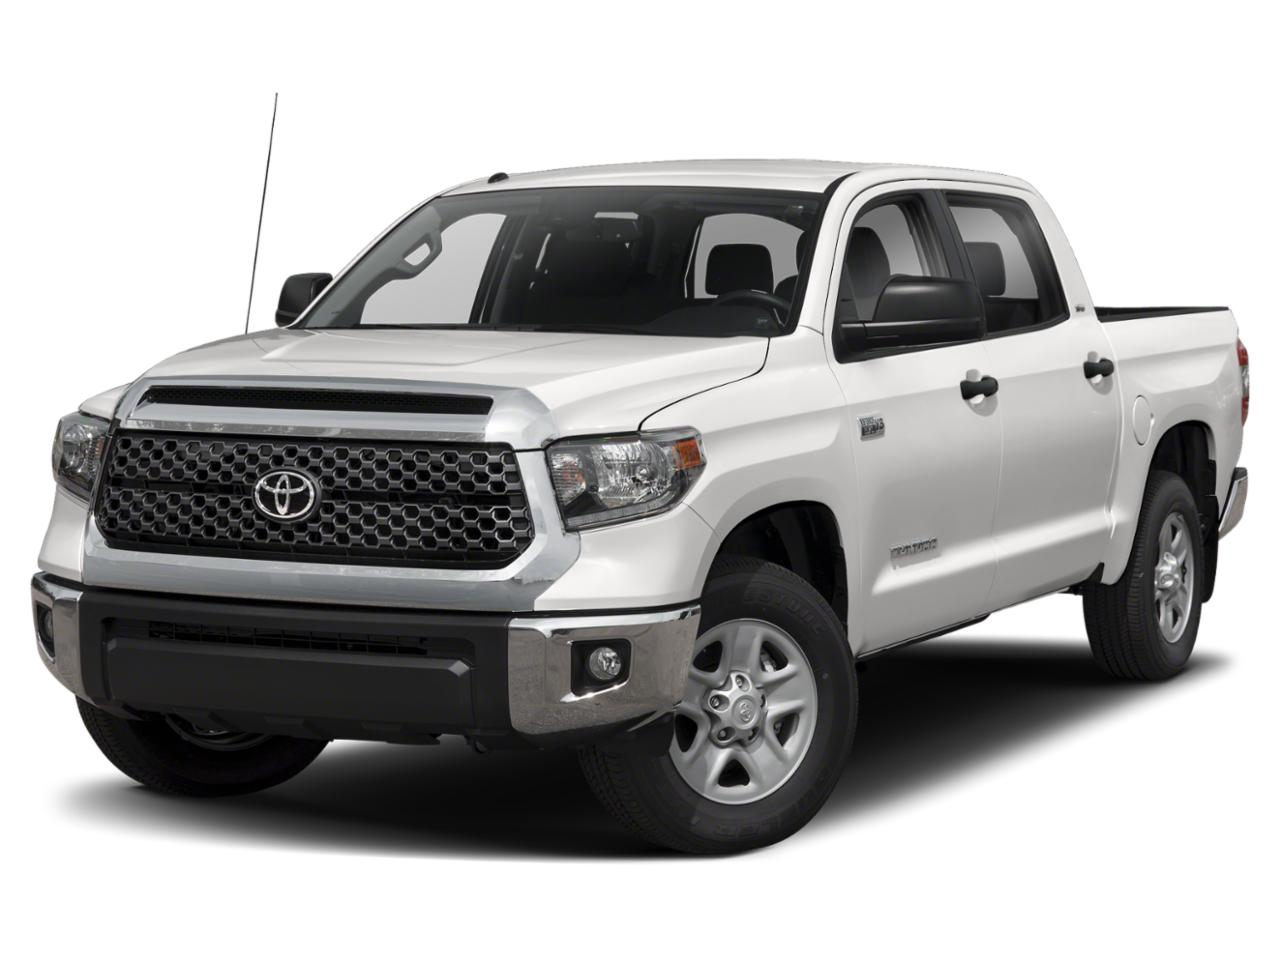 2018 Toyota Tundra 4WD Vehicle Photo in Trevose, PA 19053